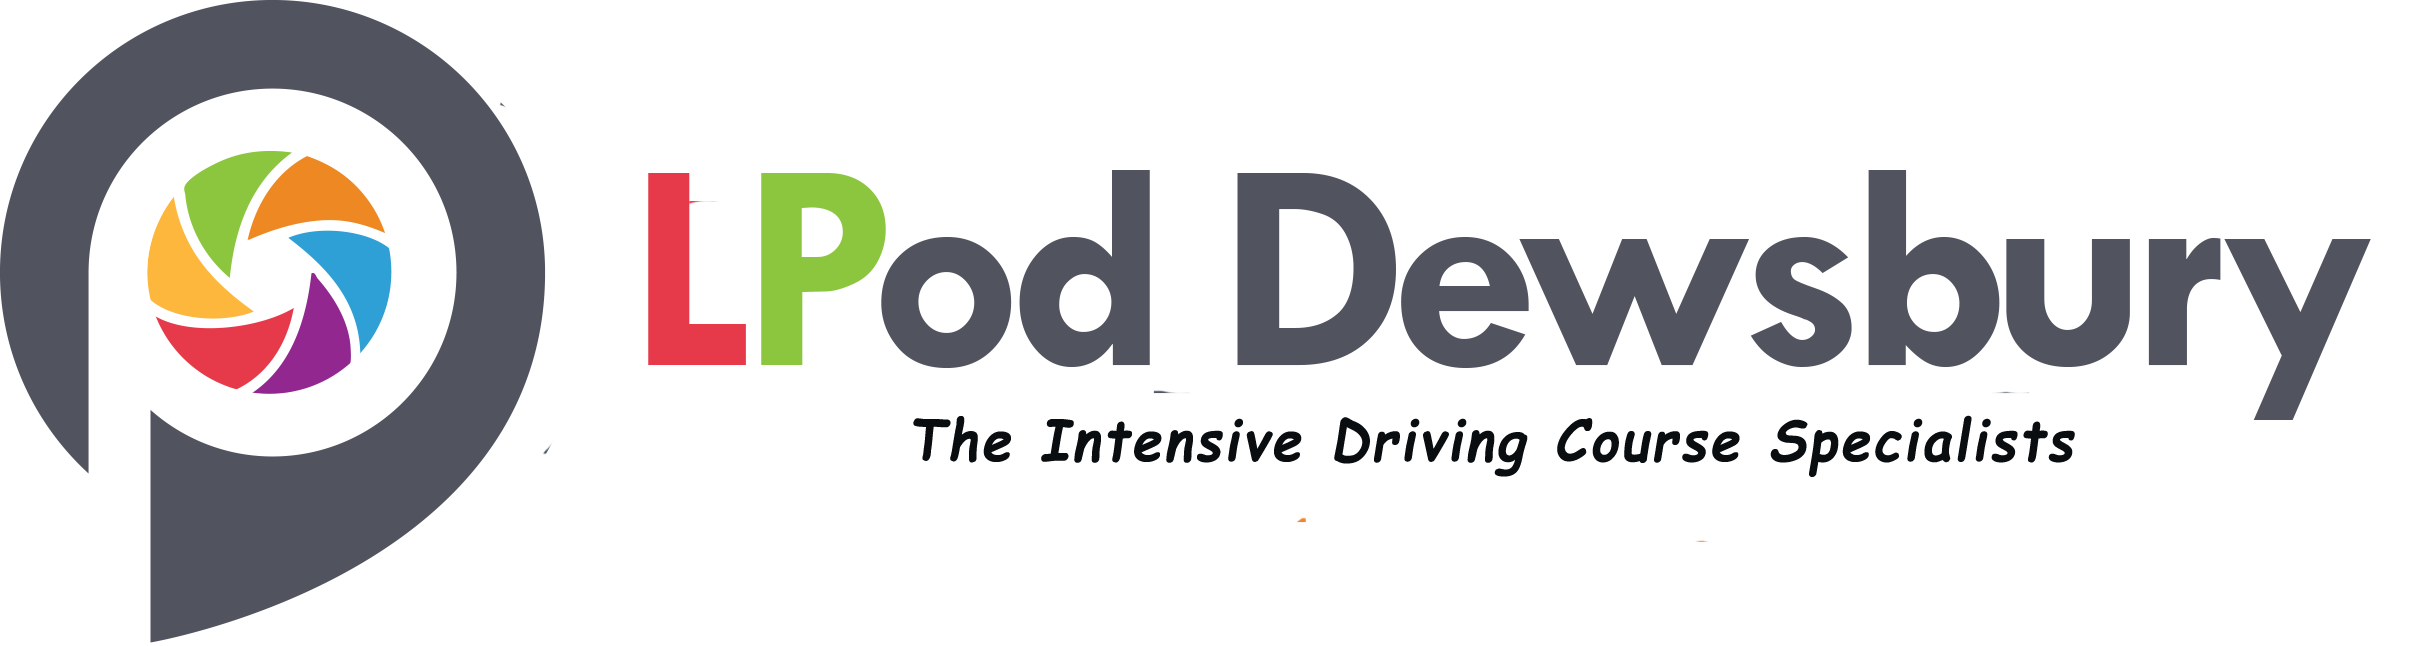 intensive driving courses dewsbury, intensive driving lessons dewsbury,